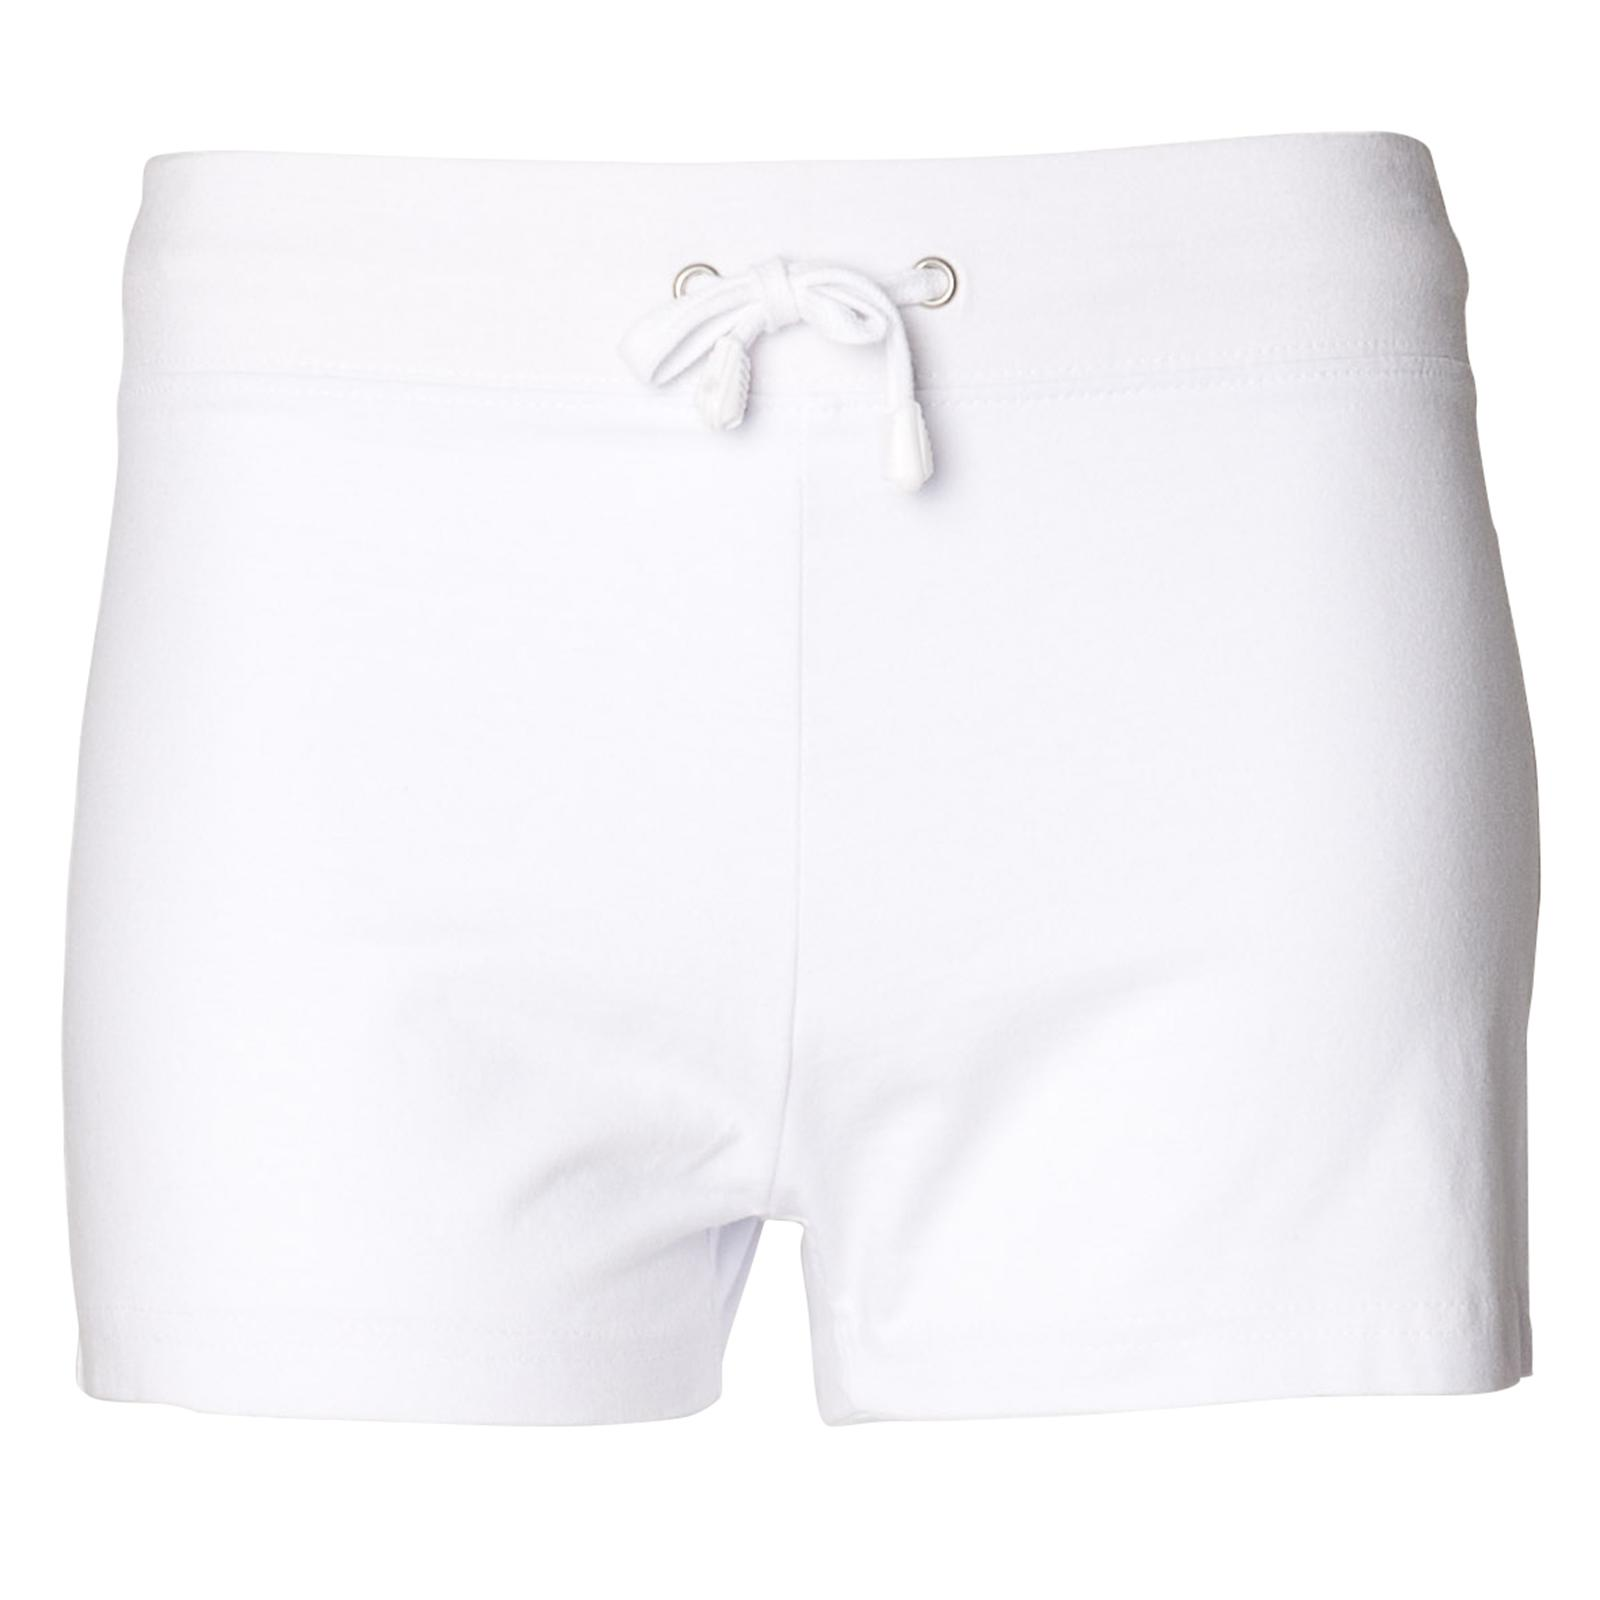 Find a great variety of women's shorts styles fit for any occasion to prep your wardrobe for the summer season. Stay in shape and snag great active styles for any type of sports. Shorts made with moisture wicking materials and uniquely lightweight fabrics to offer a wide range of motion.